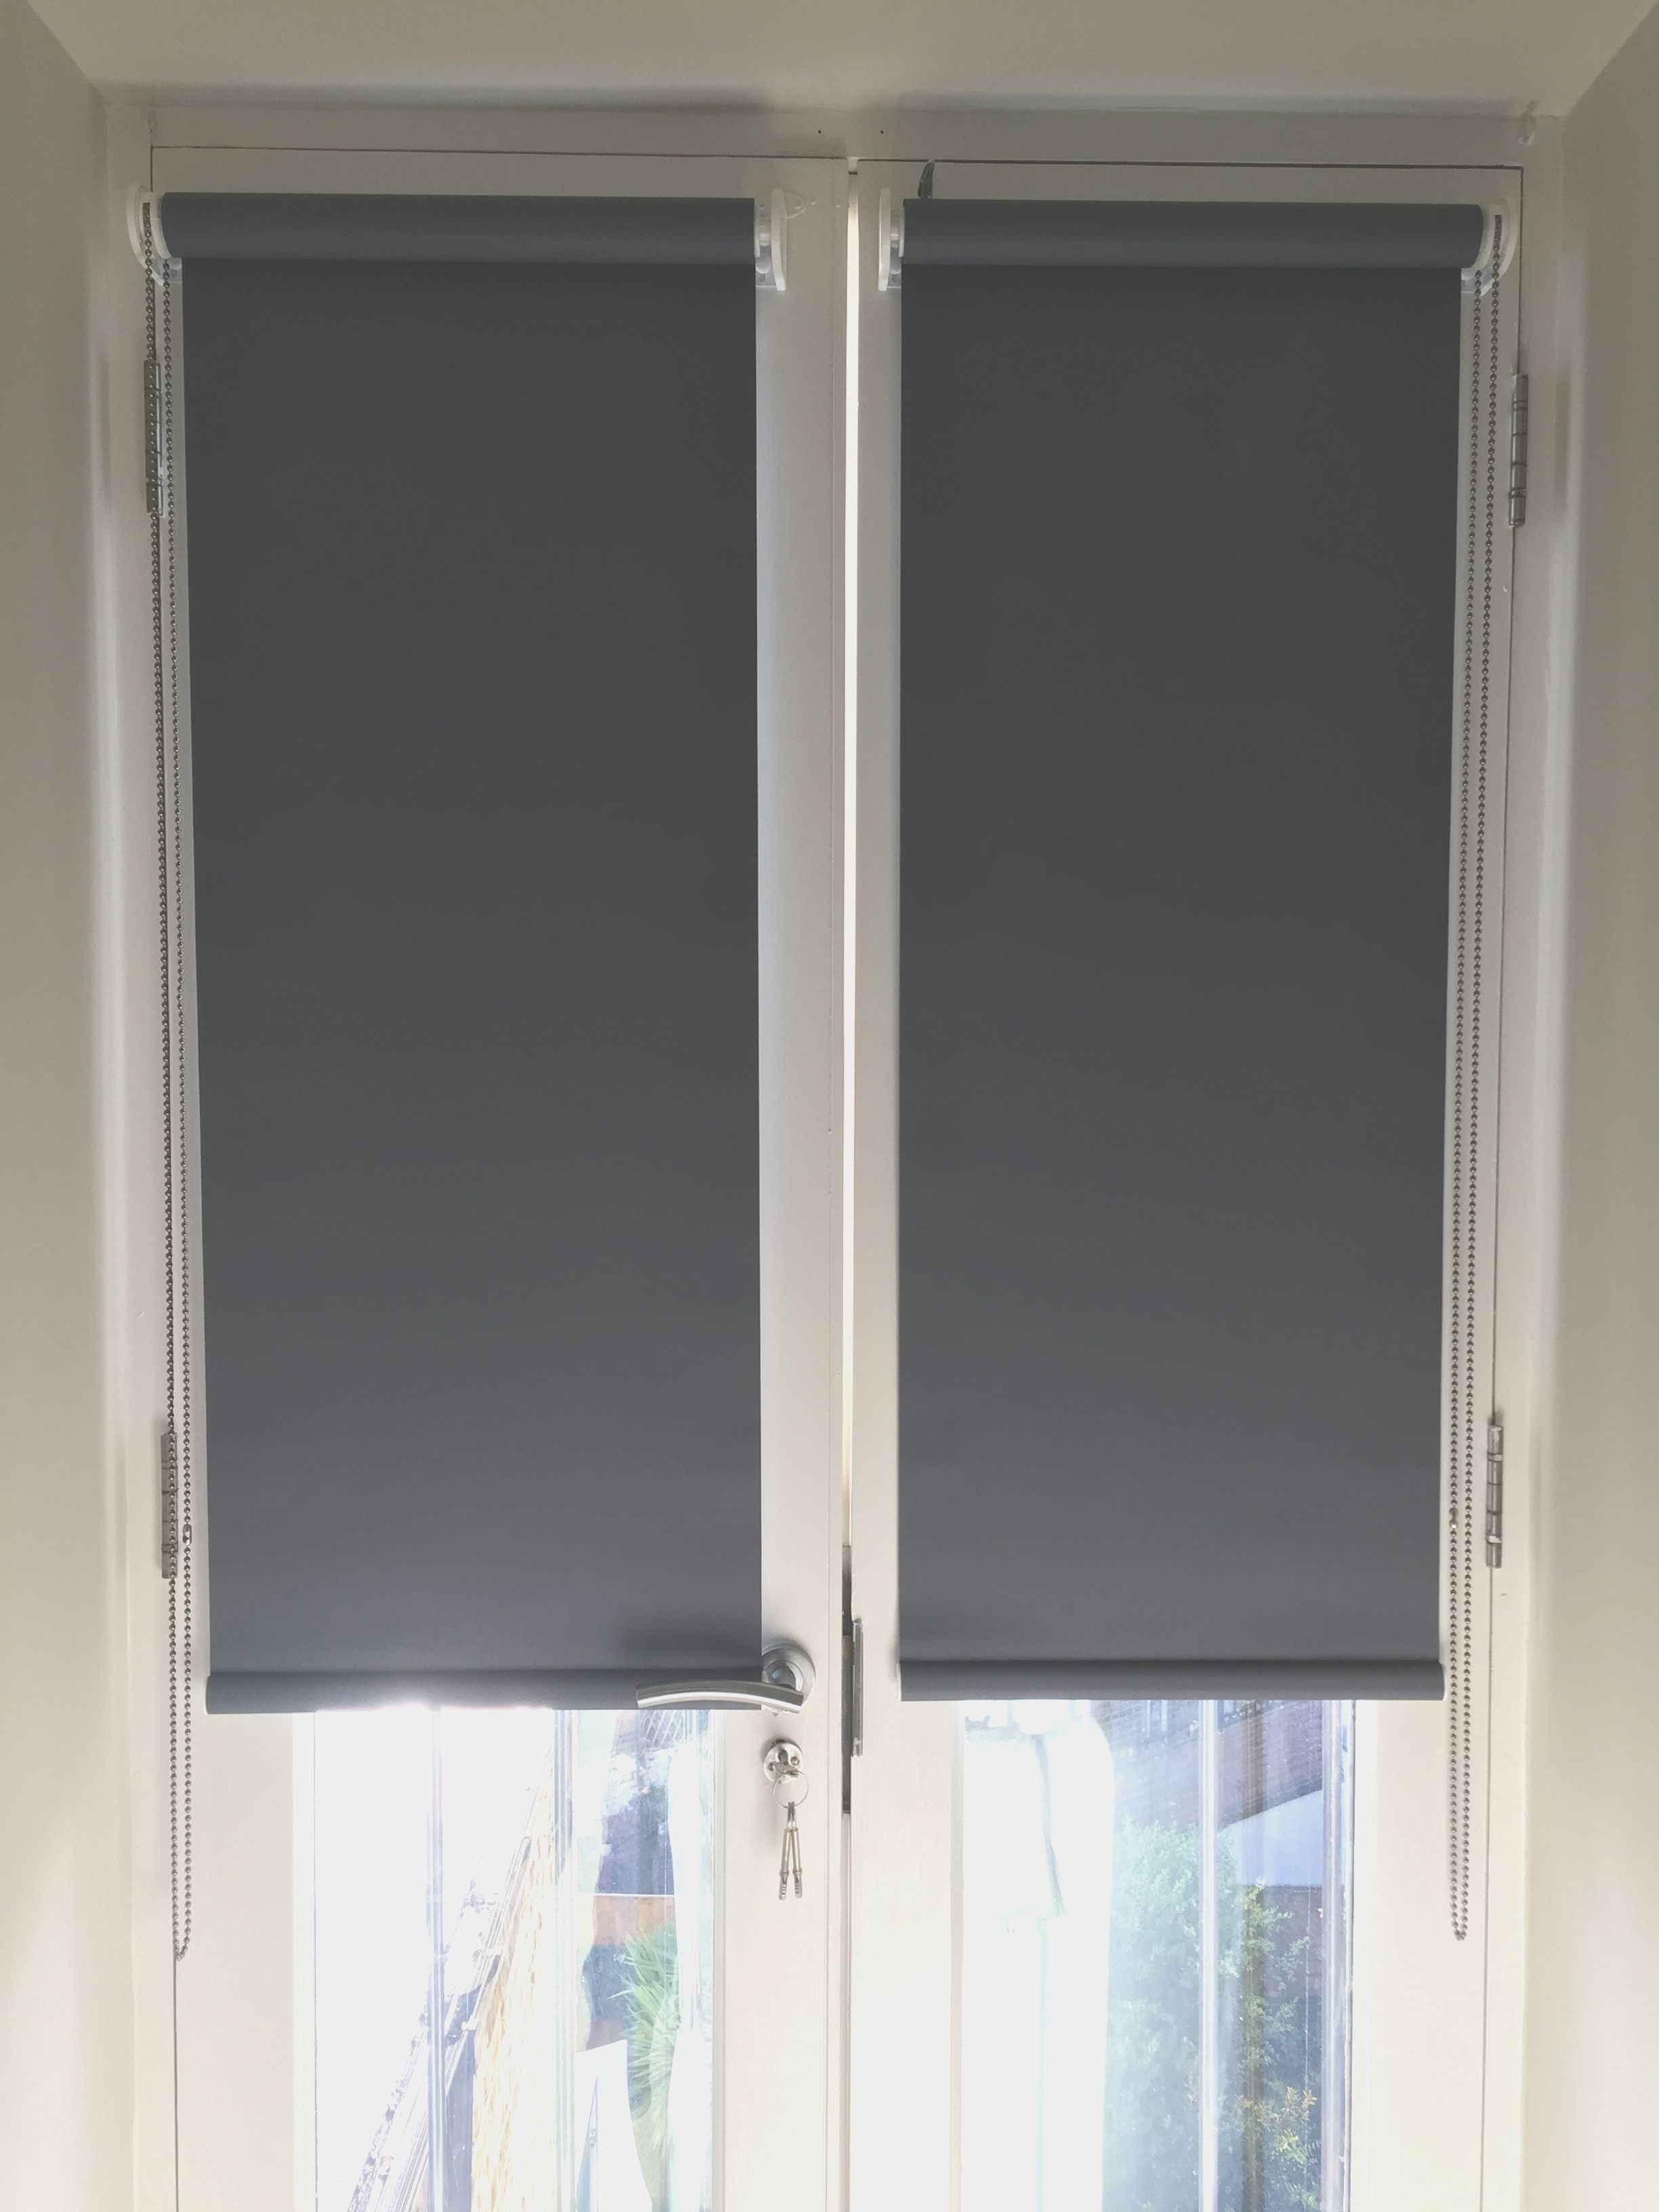 Blackout Roller Blinds For French Doors Installed To Home In Wandsworth London Made In The Uk Mad Blinds For French Doors Door Coverings Patio Door Blinds